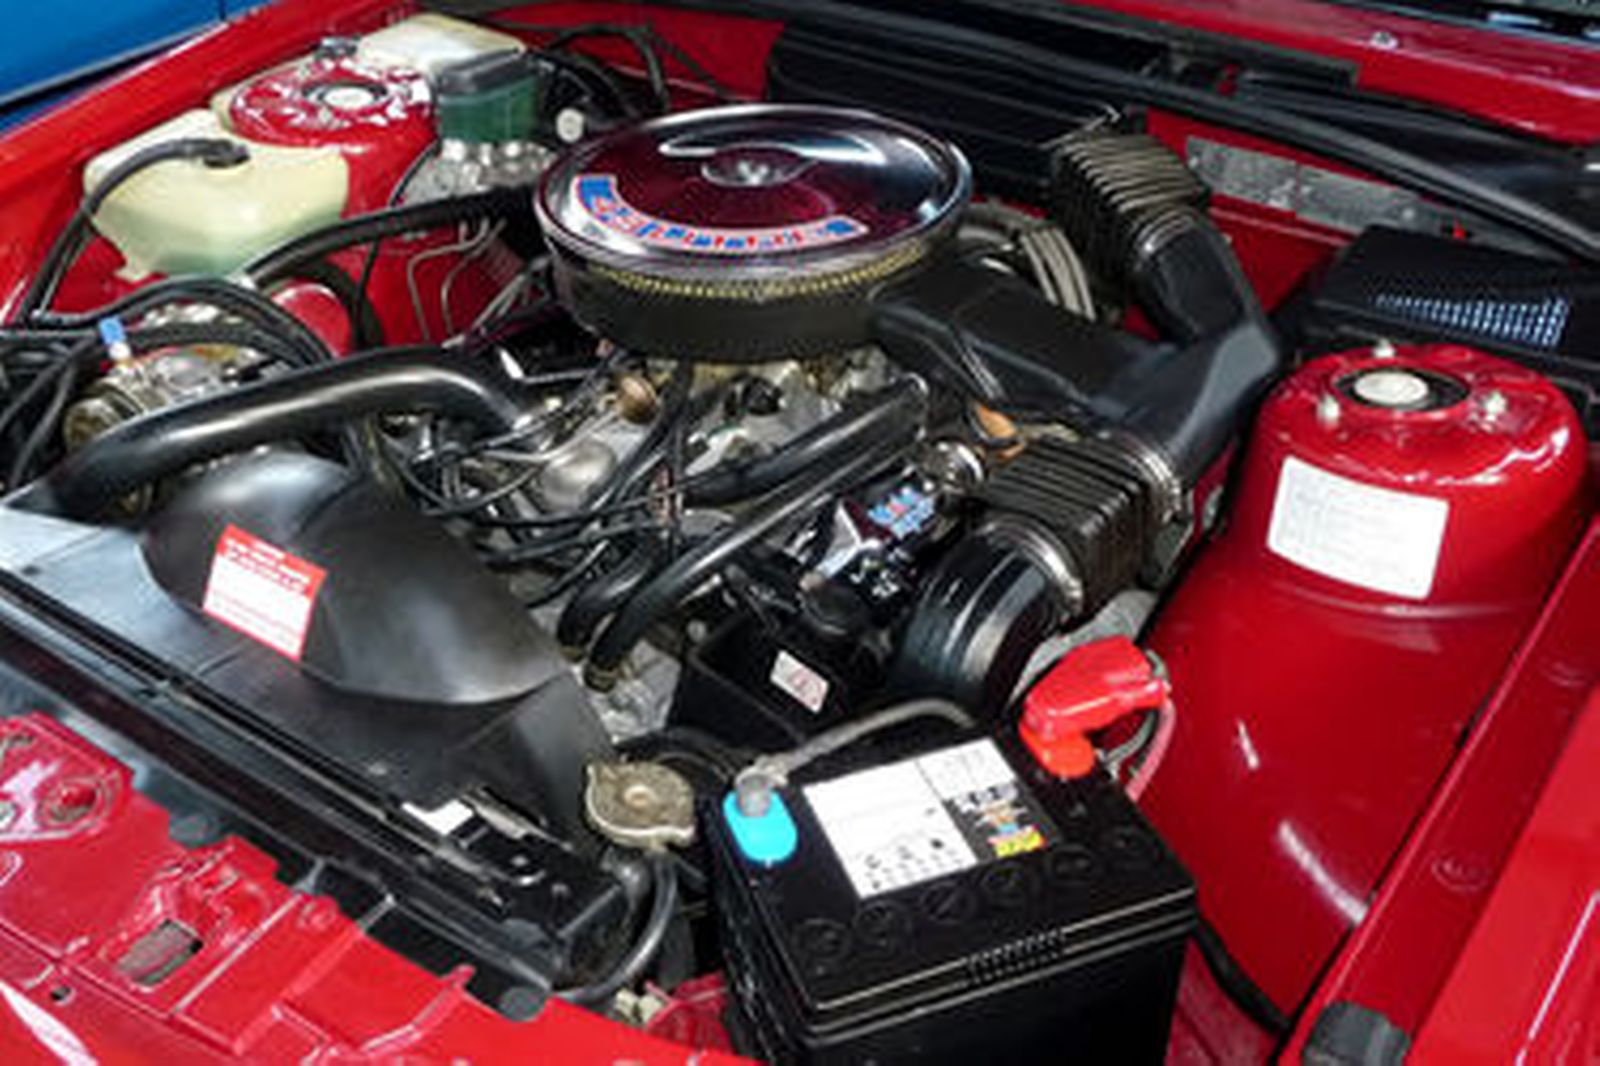 Holden vl commodore group a ss sedan build for Motor vehicle open on saturday